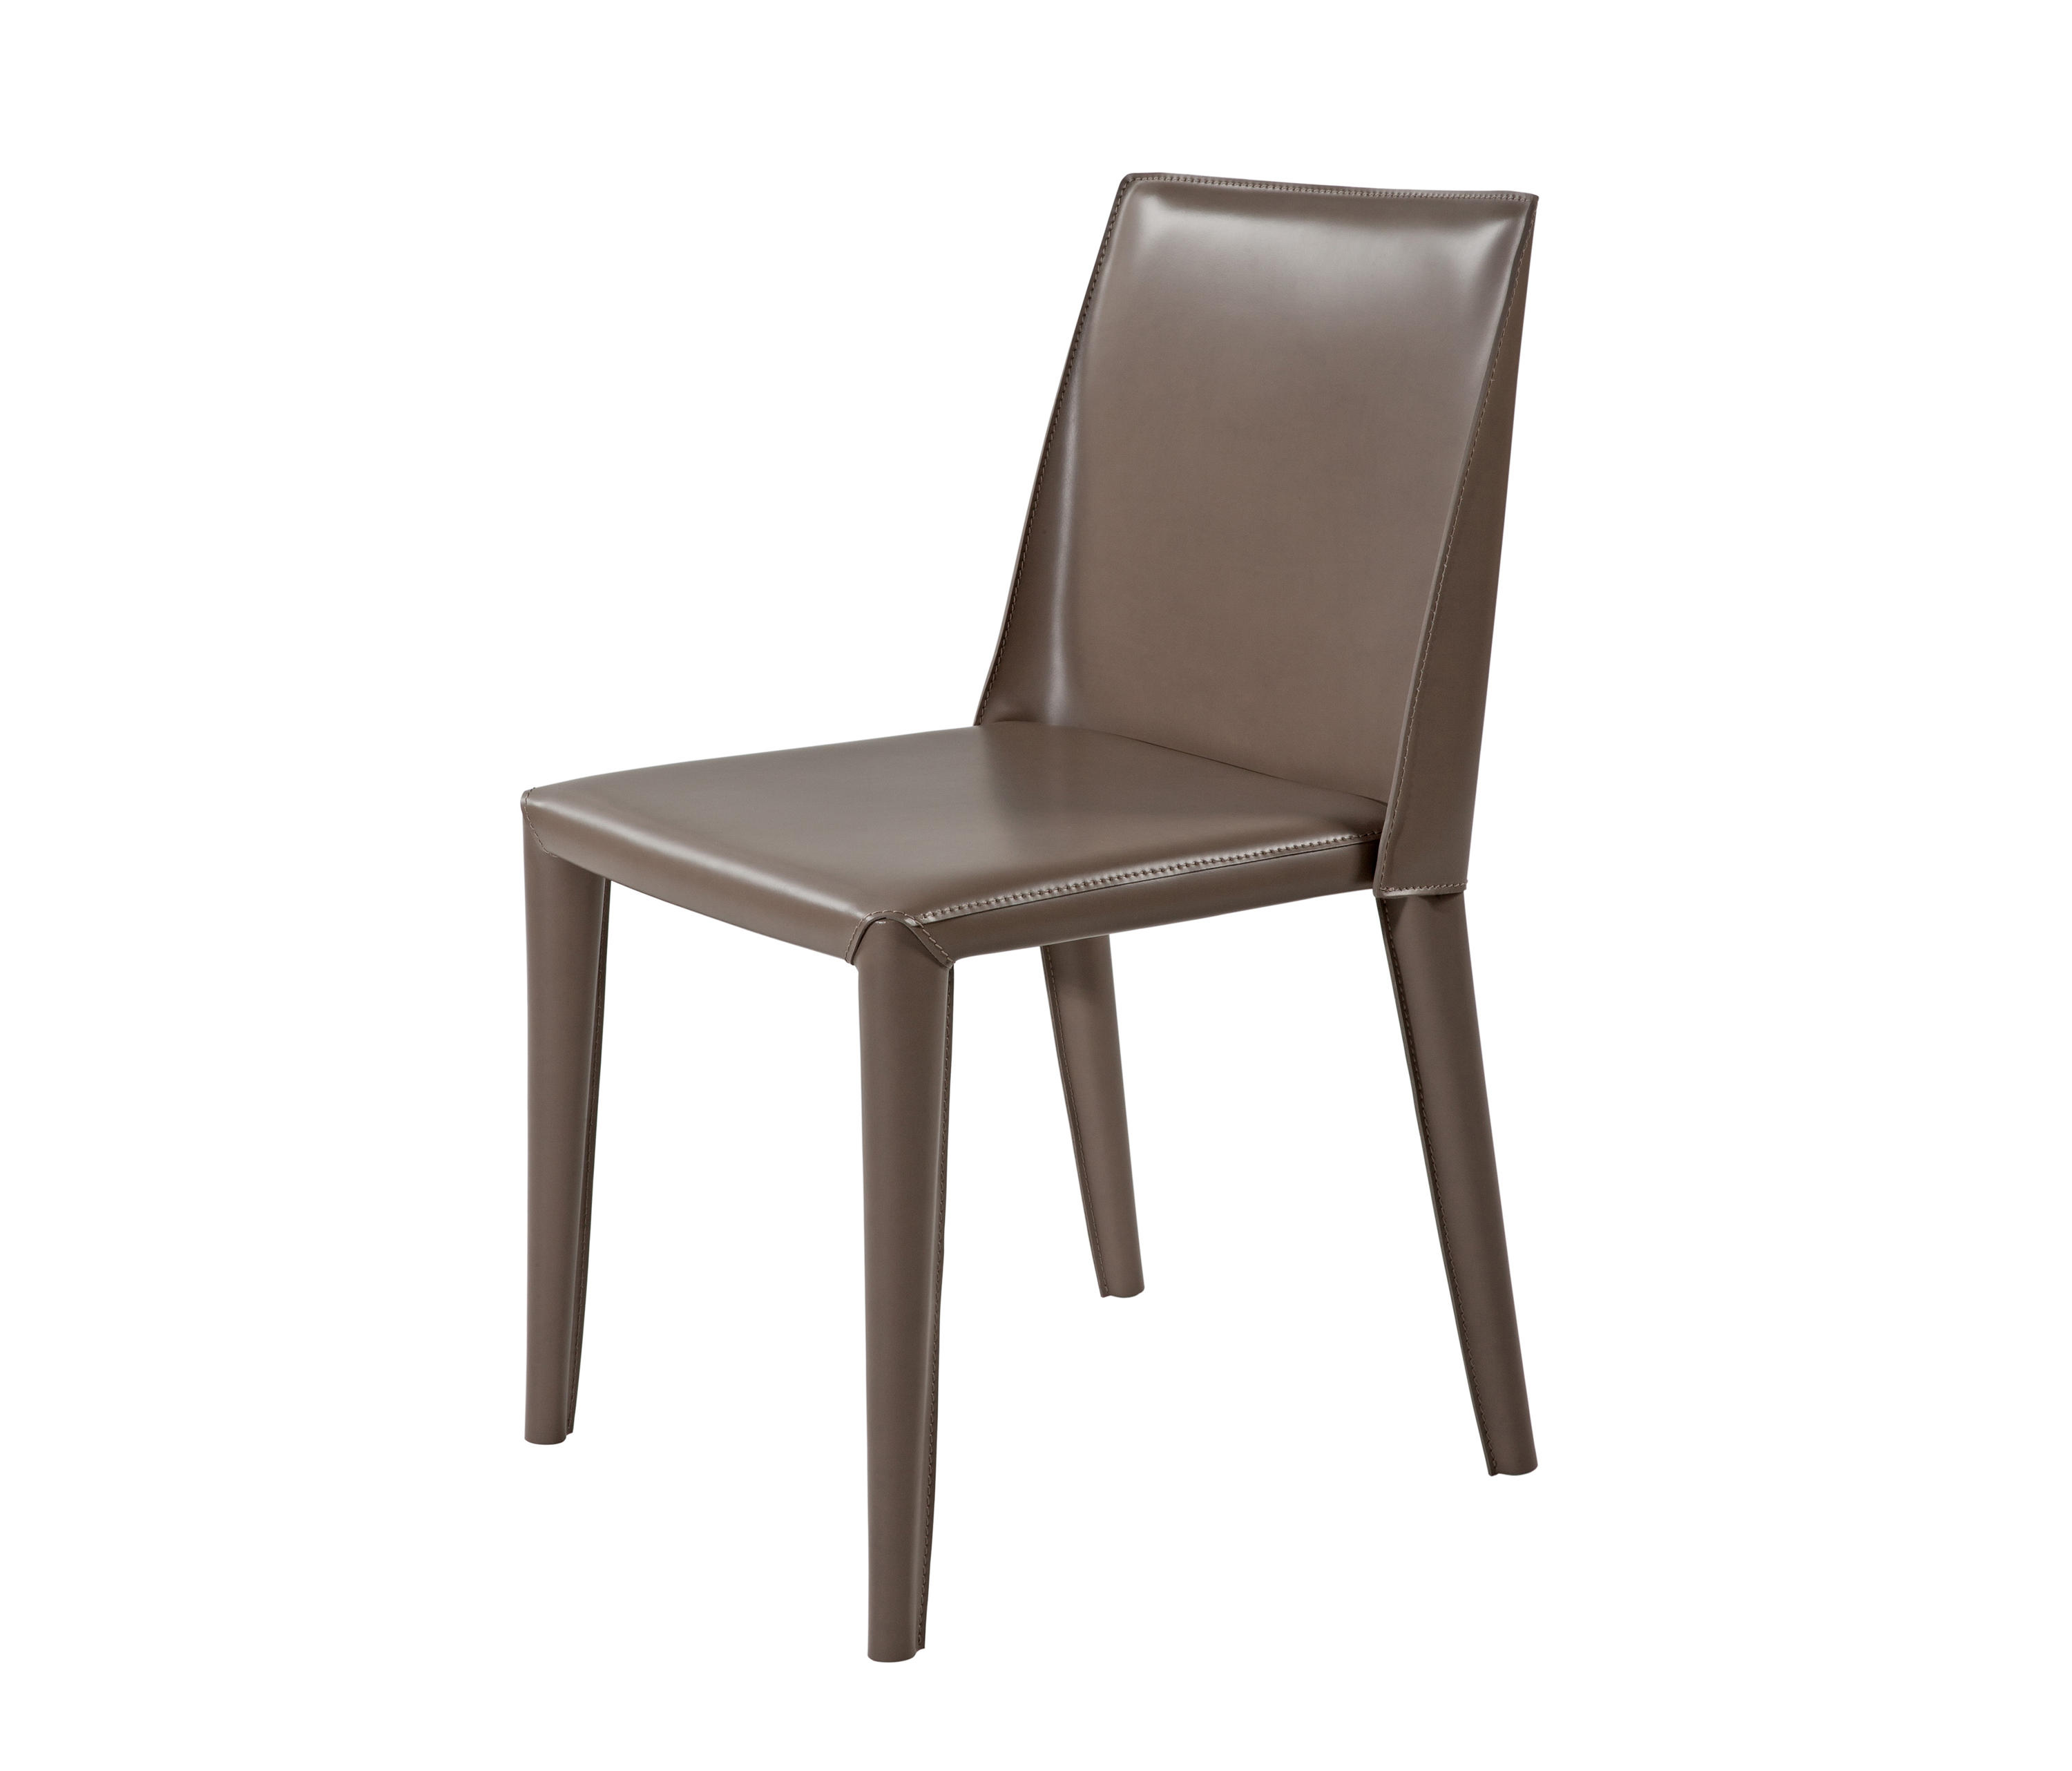 DINDI SIDE CHAIR Restaurant chairs from Frag